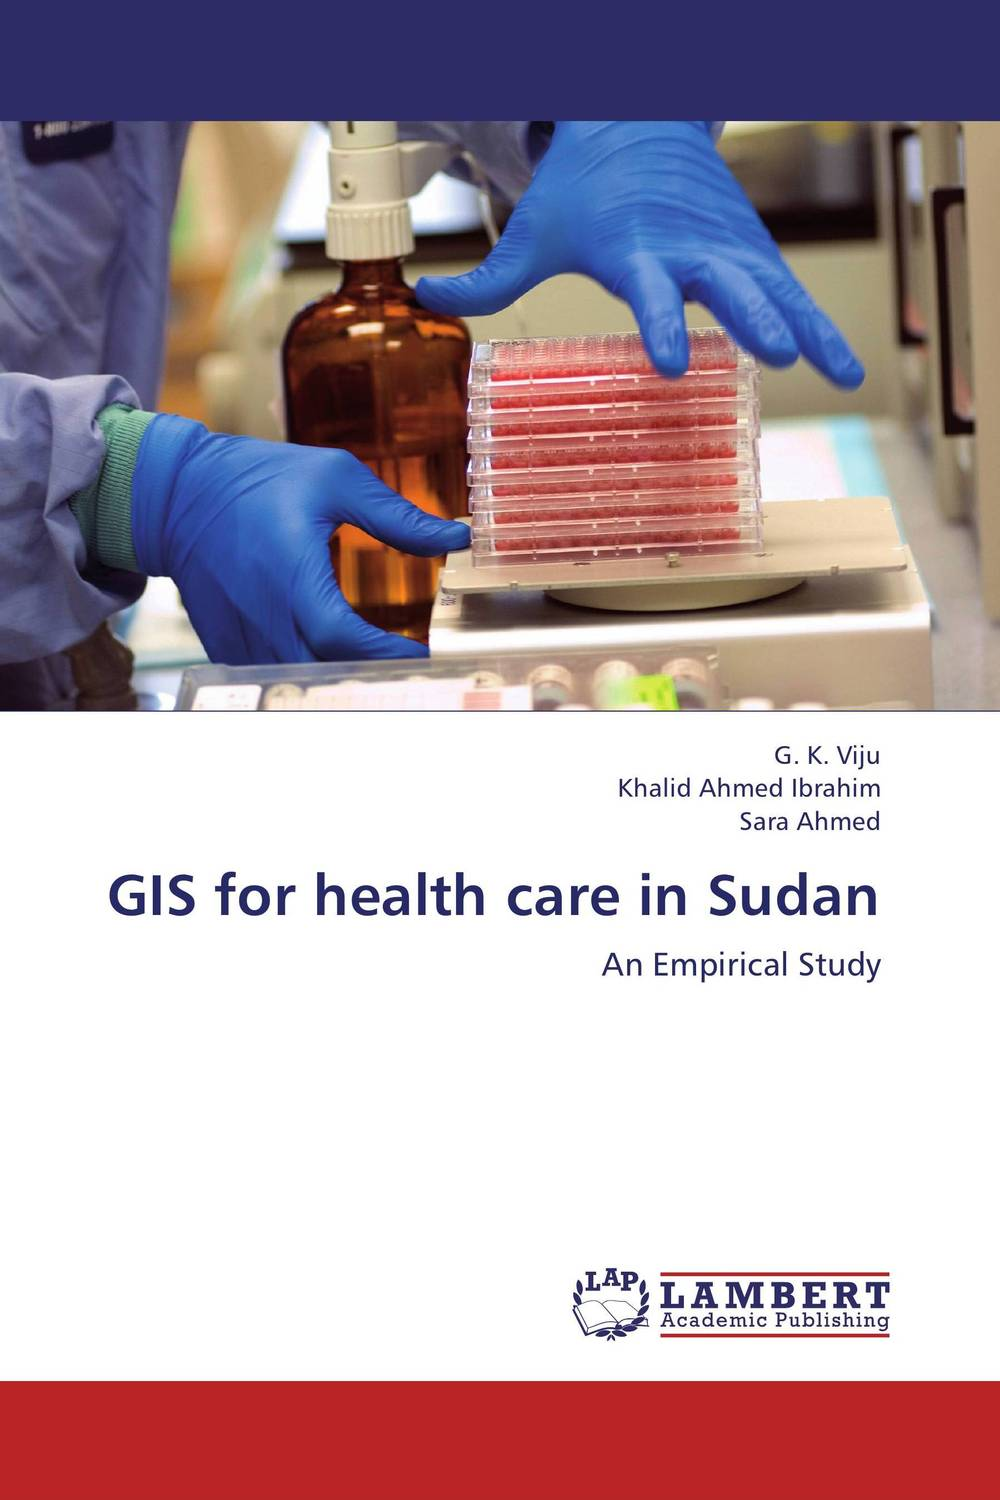 GIS for health care in Sudan